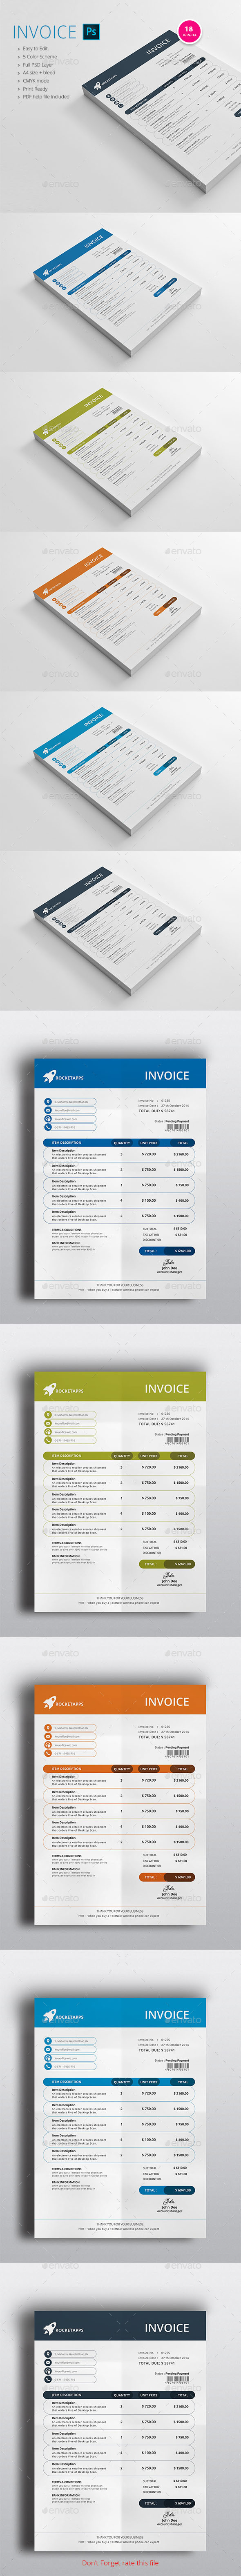 INVOICE DESIGN - Proposals & Invoices Stationery